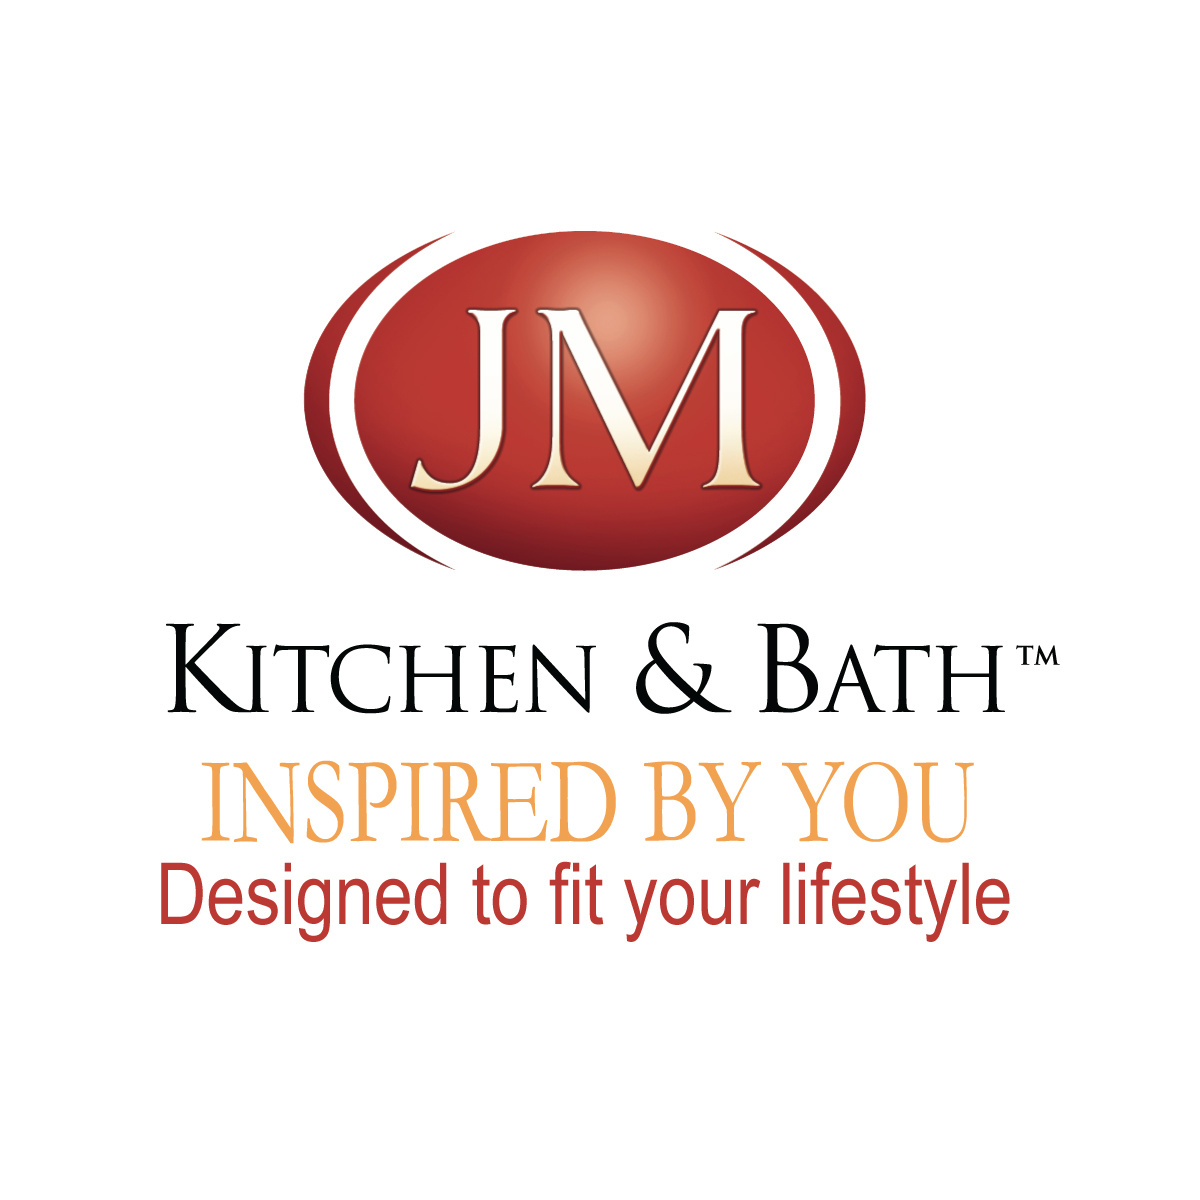 Home - JM Kitchen and Bath